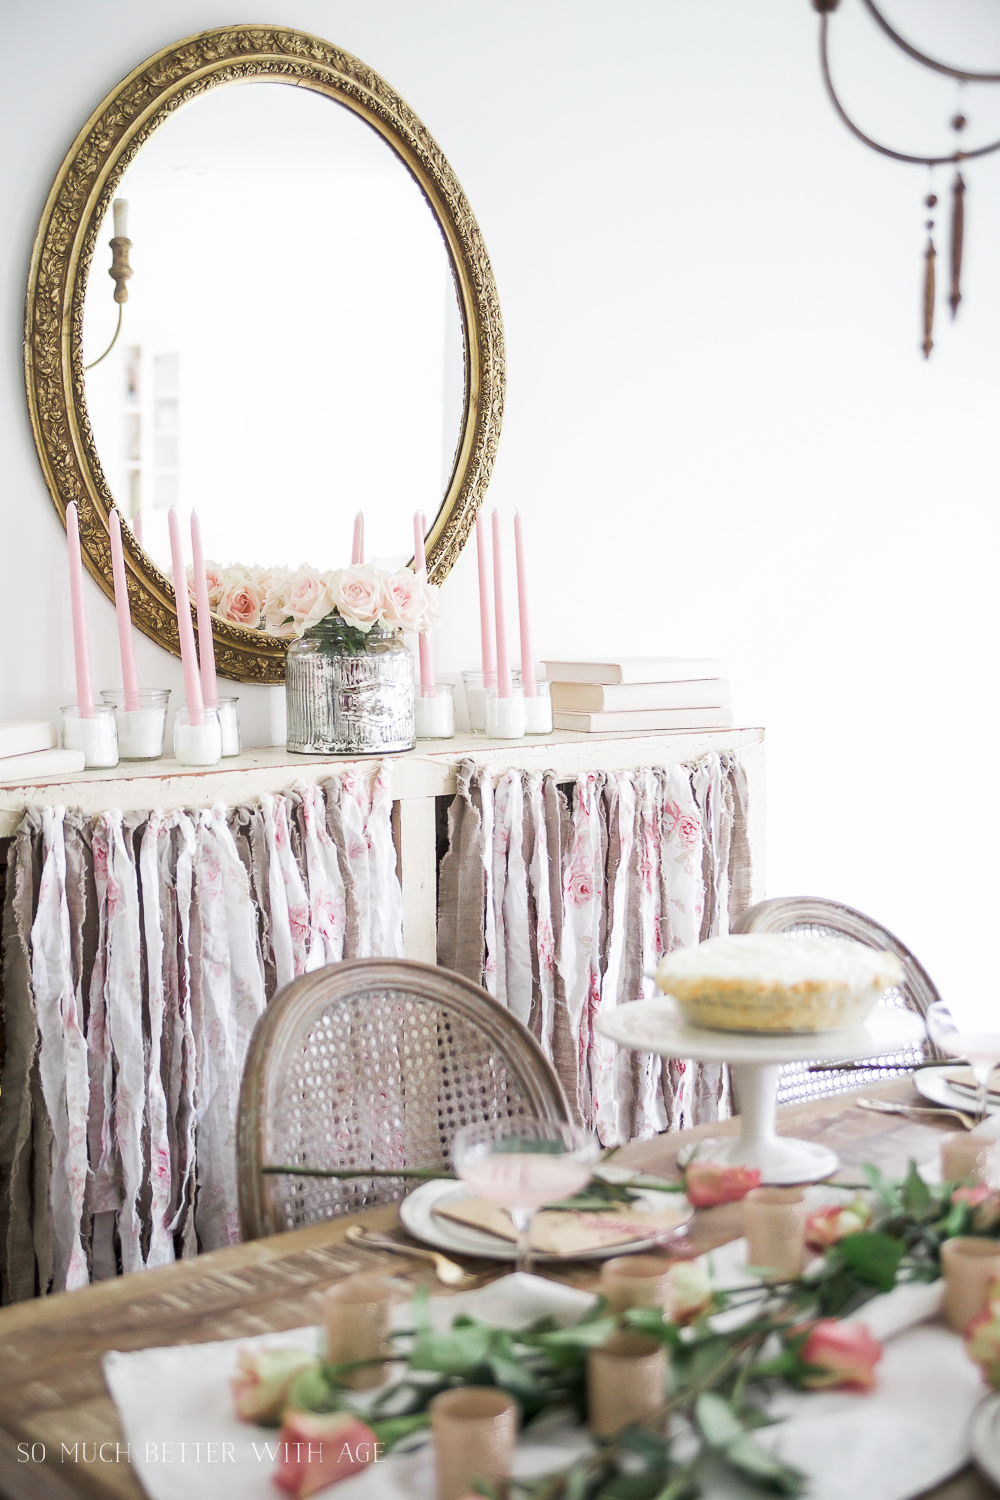 Pretty pink roses Valentine's Day table setting / antique mirror hanging in dining room - So Much Better With Age